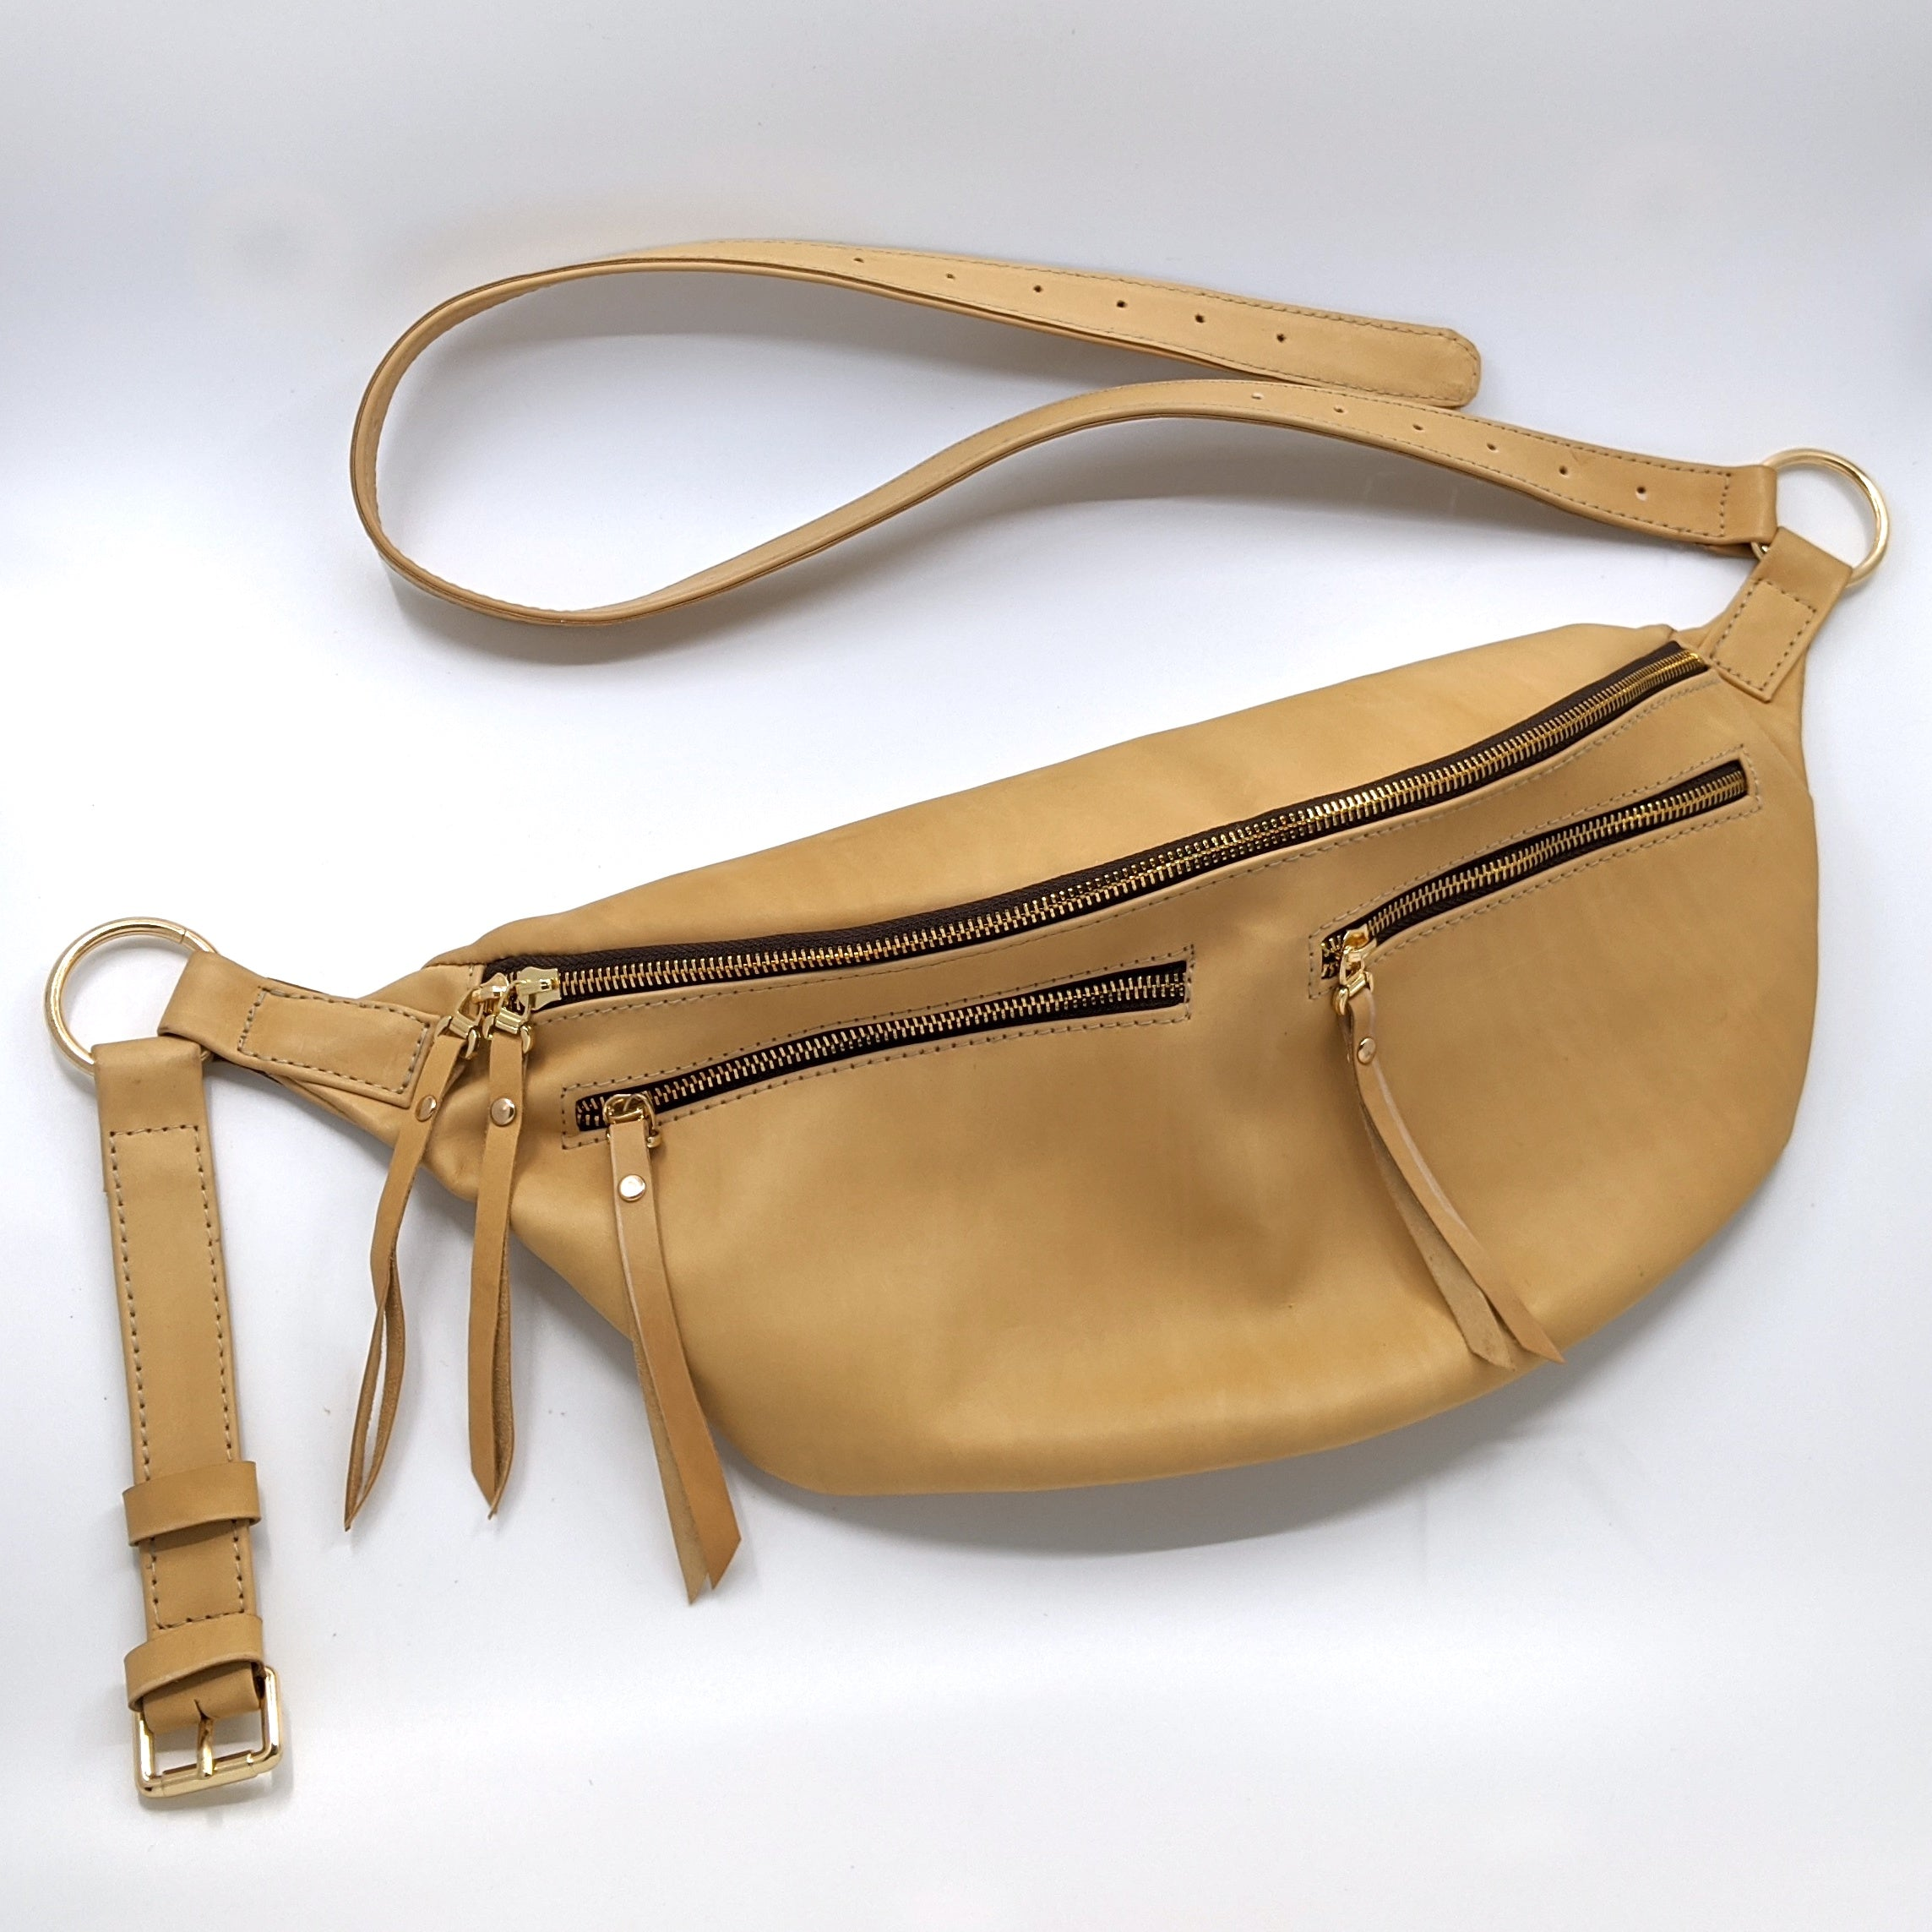 The Everywhere Bag — Very Light Camel-colored Leather with Gold Hardware